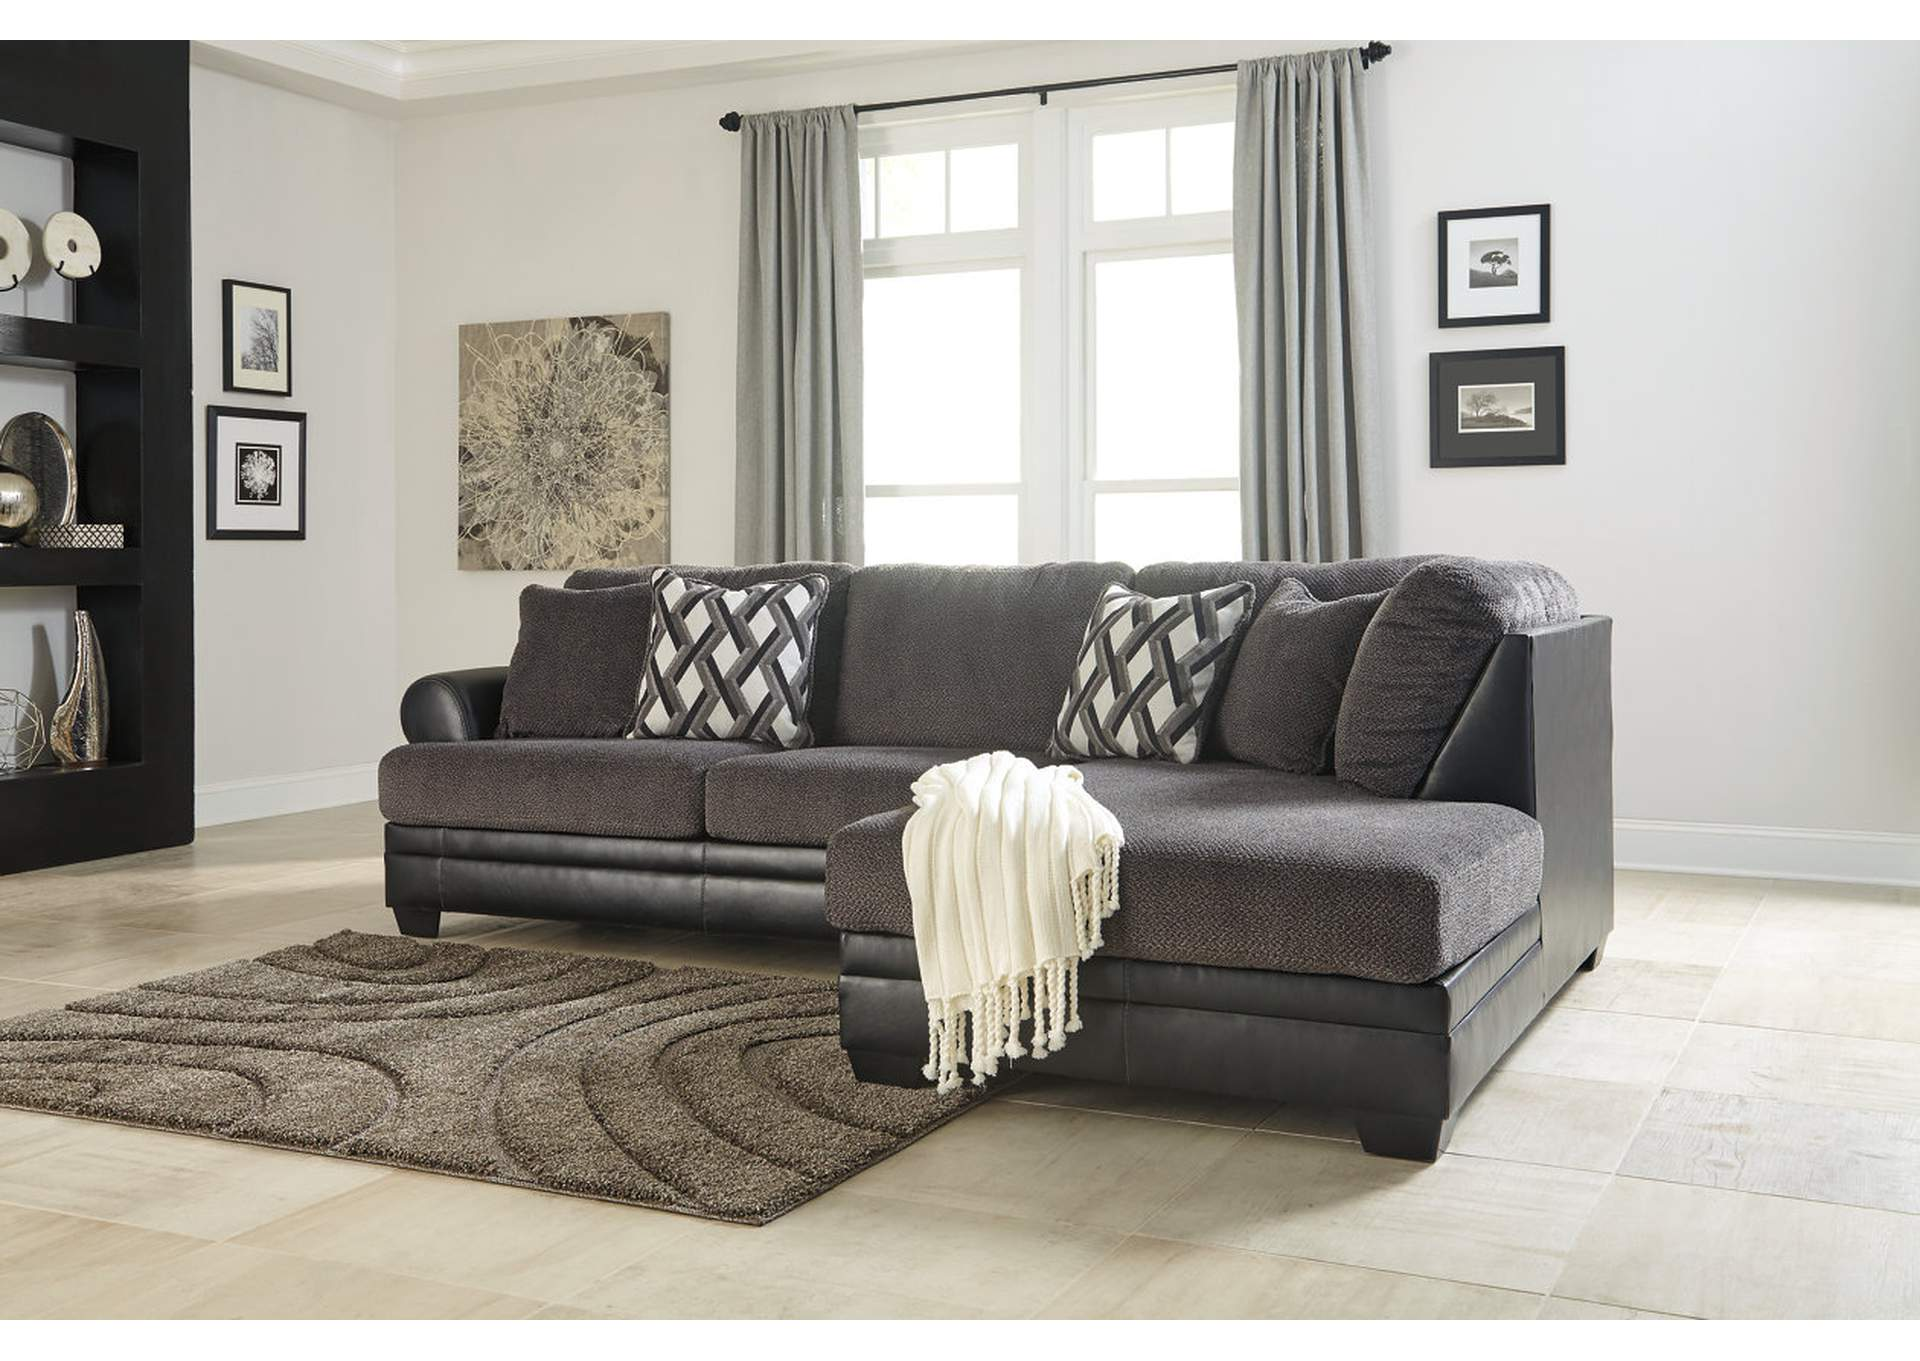 Kumasi Smoke RAF Chaise Sectional,Benchcraft